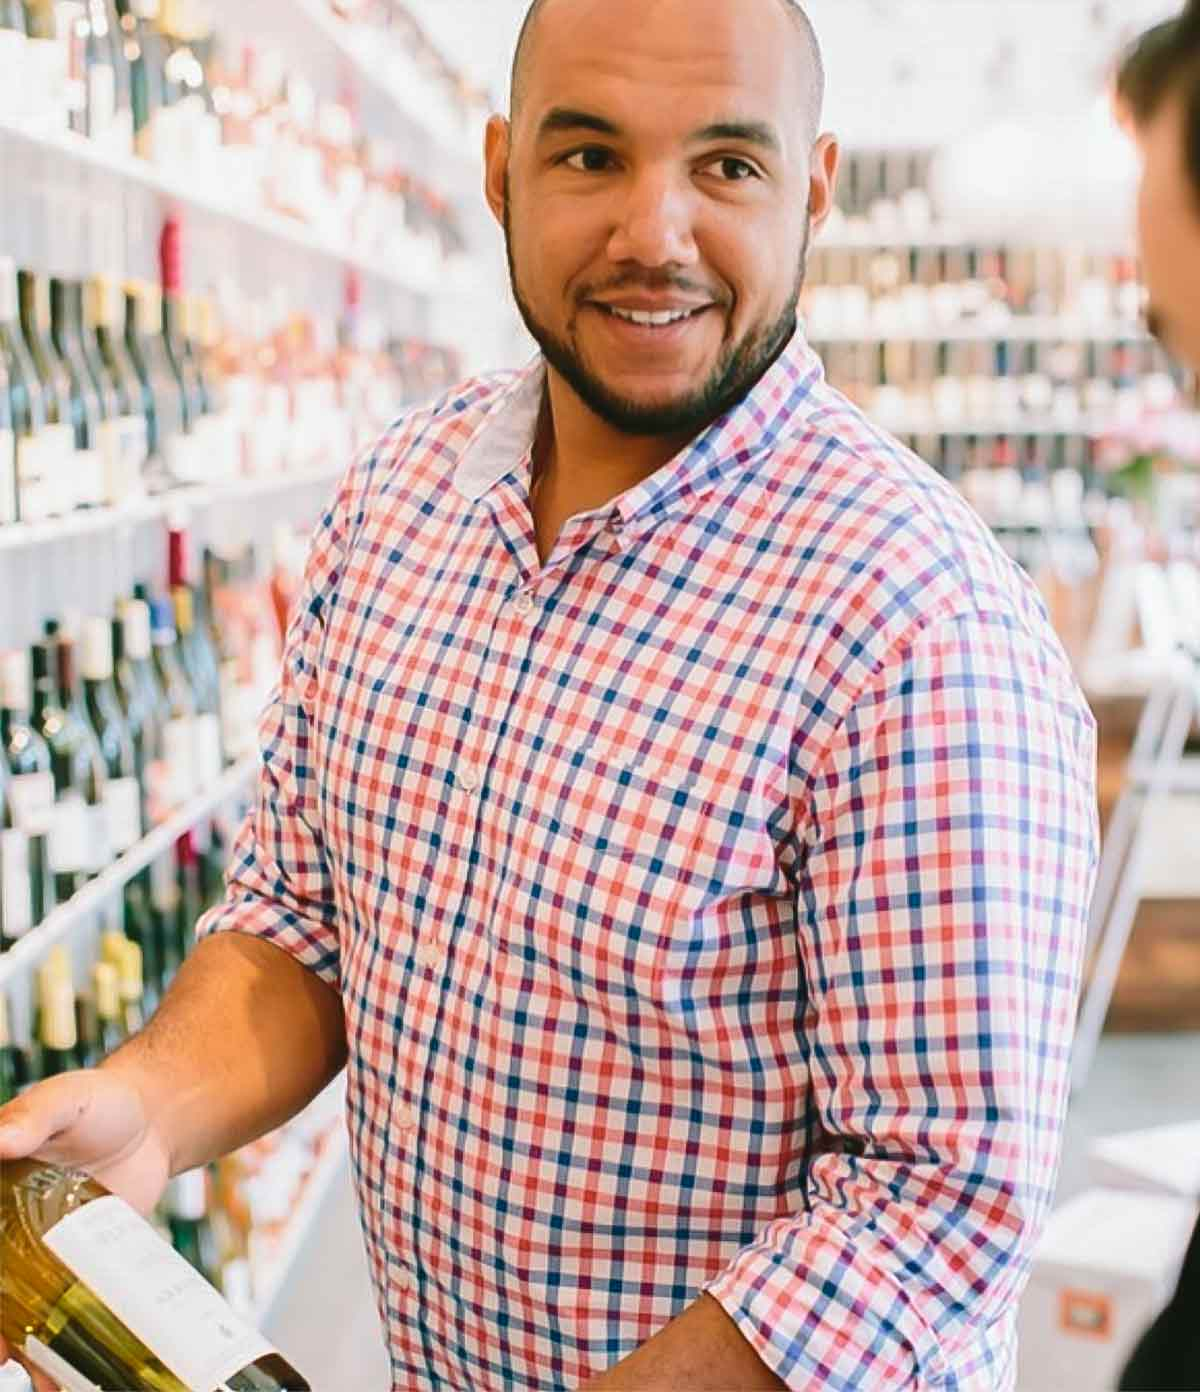 TJ Douglas showing a bottle of wine to a customer.